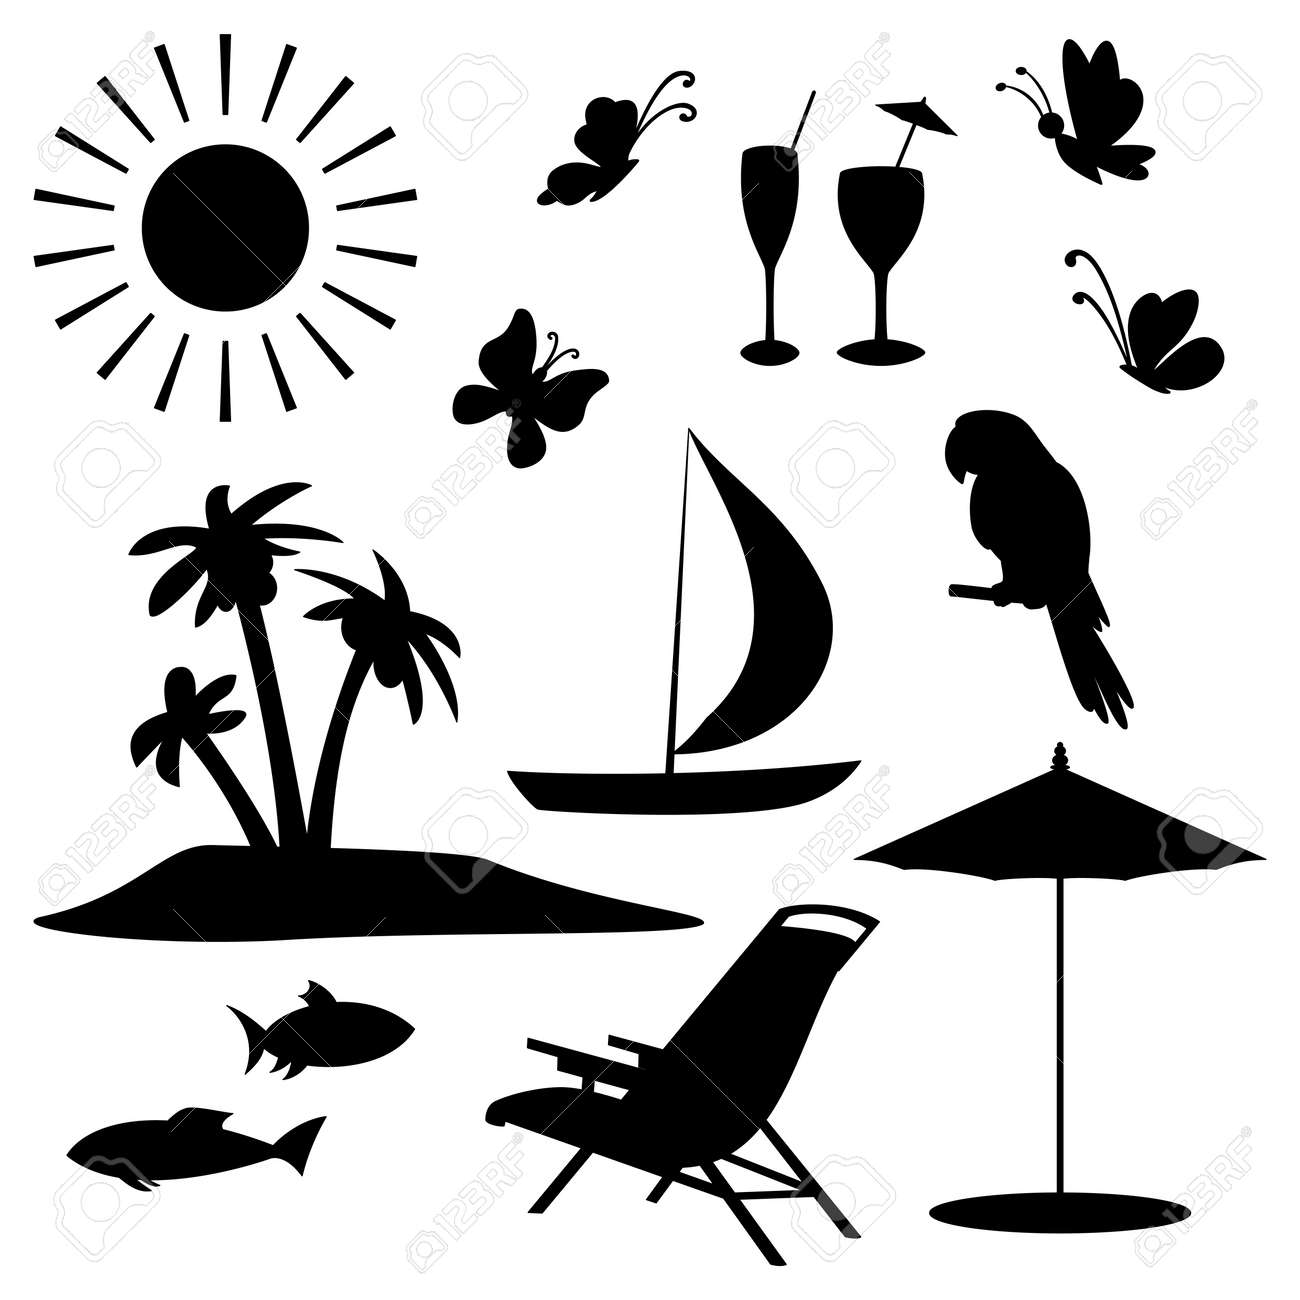 Beach chair and umbrella black and white - Beach Chair Set Objects Represent Summer Exotic And A Beach Black Contour On White